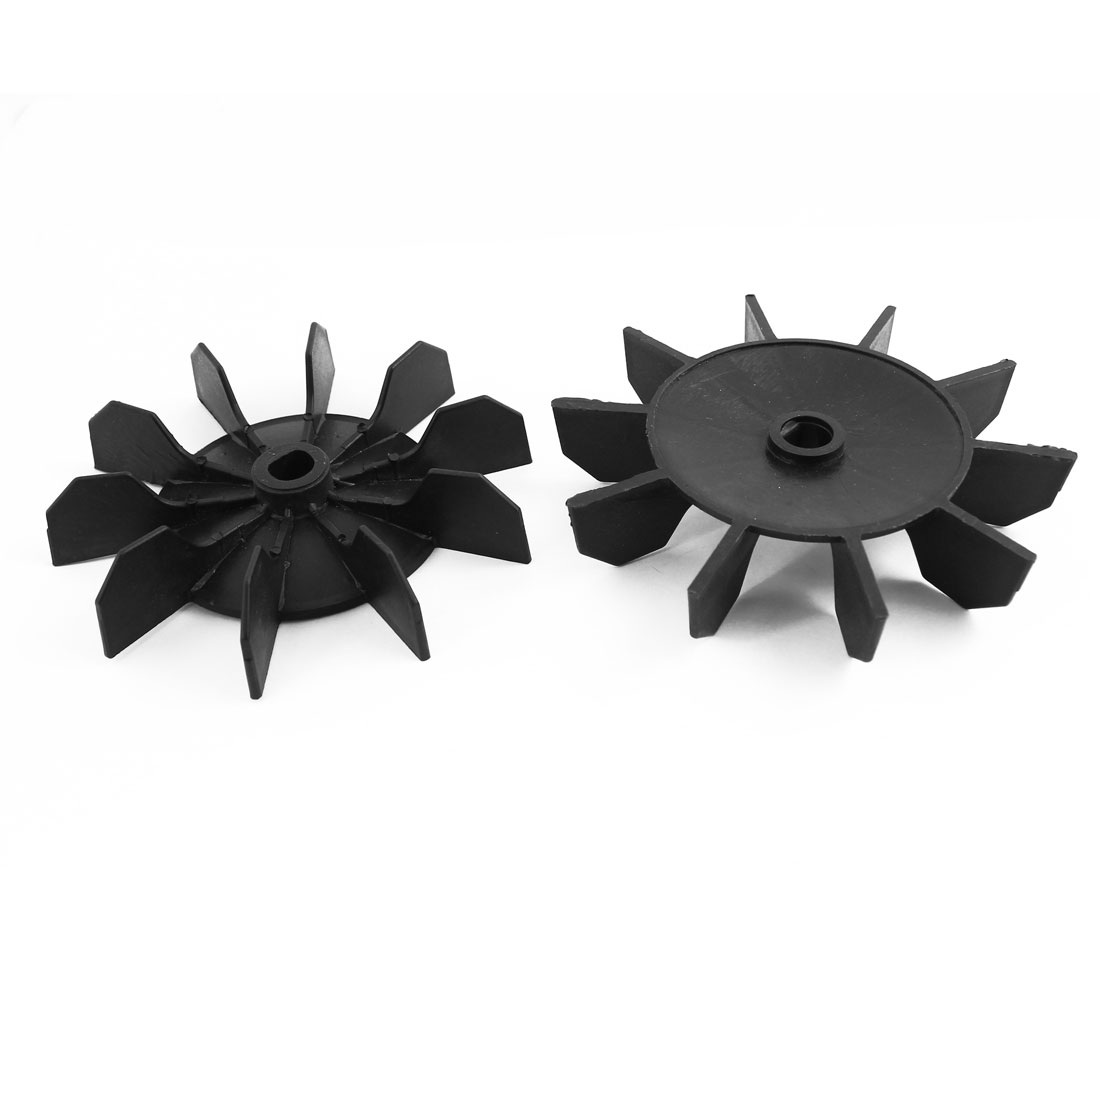 Spare Part Black Plastic 13mm Inner Dia 10 Impeller Motor Fan Vane 2 Pcs